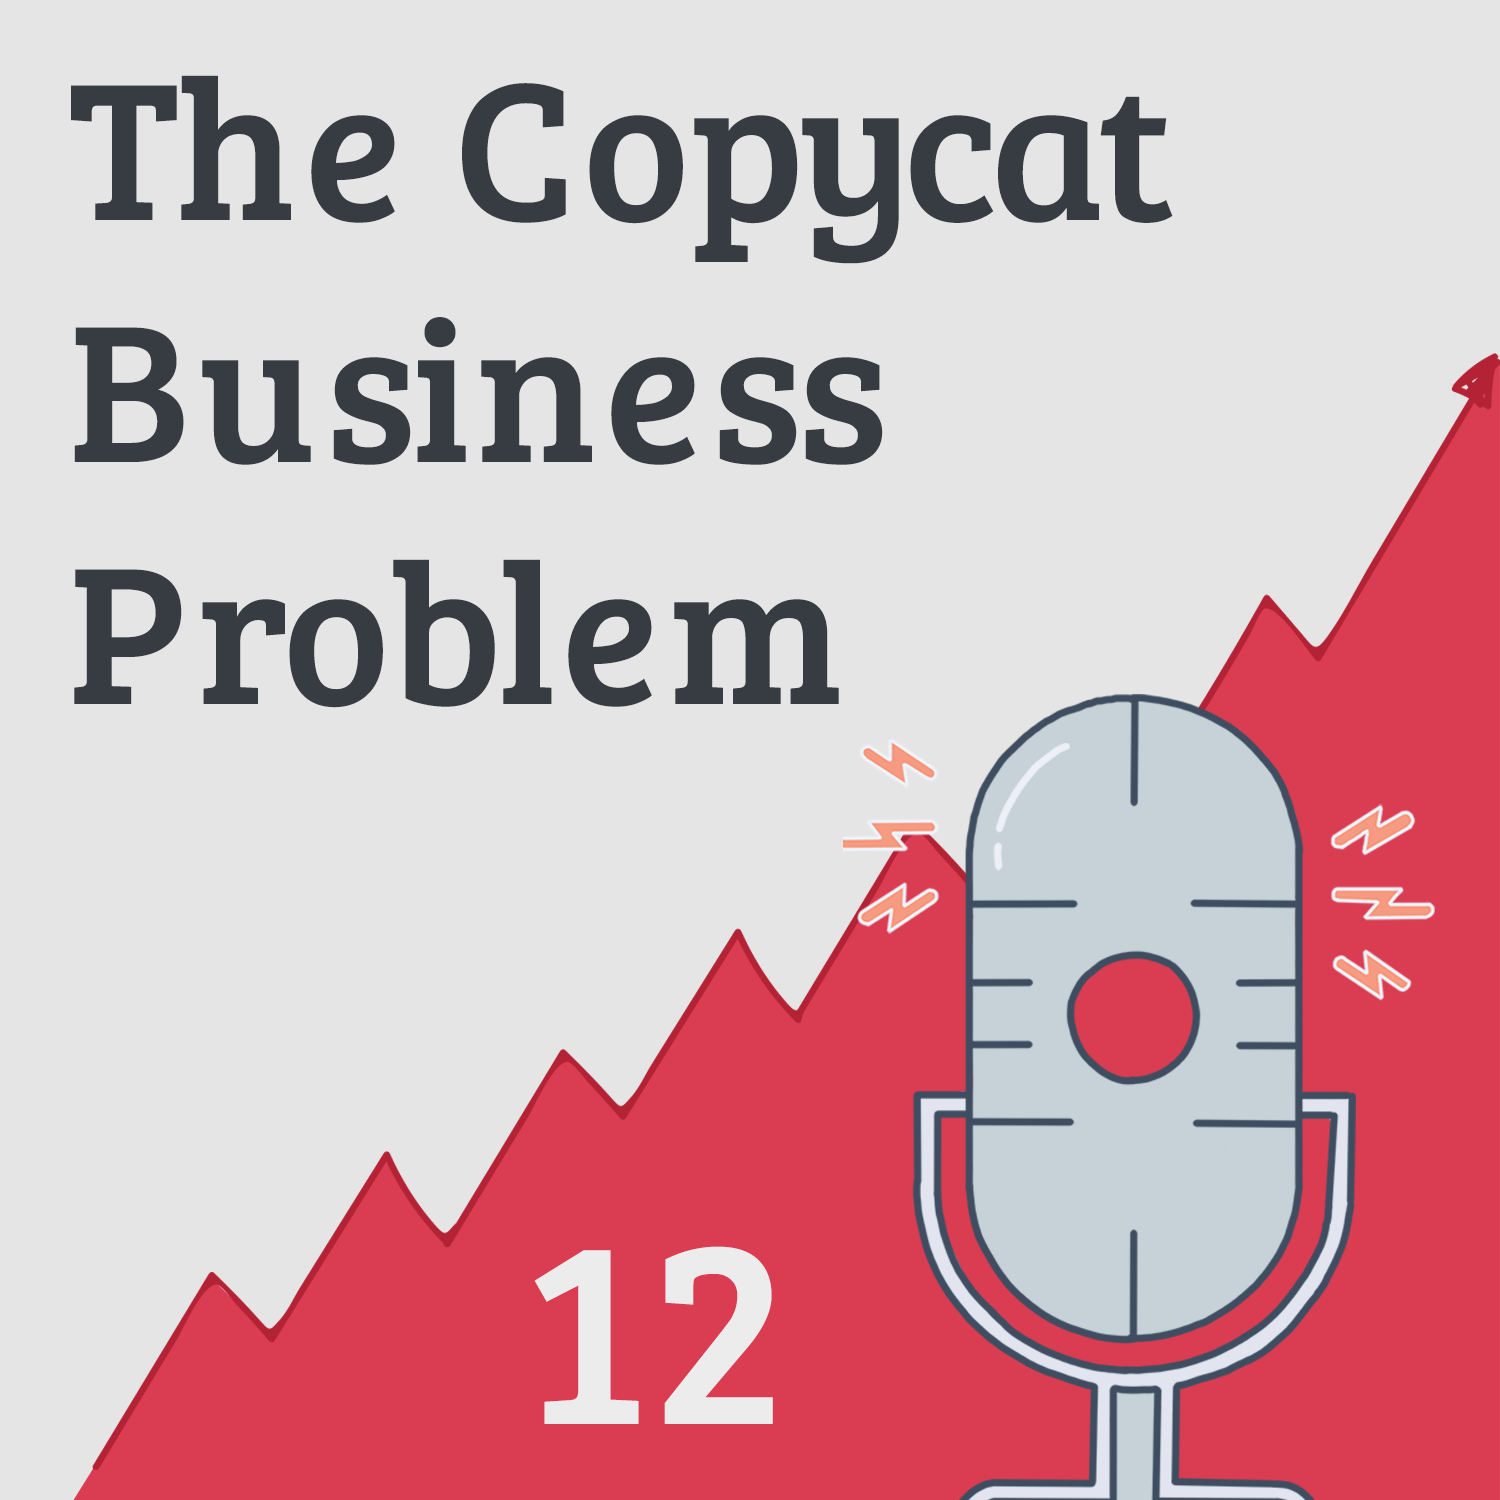 Steal Like an Artist? How Copying the Wrong Way Will Doom Your Business